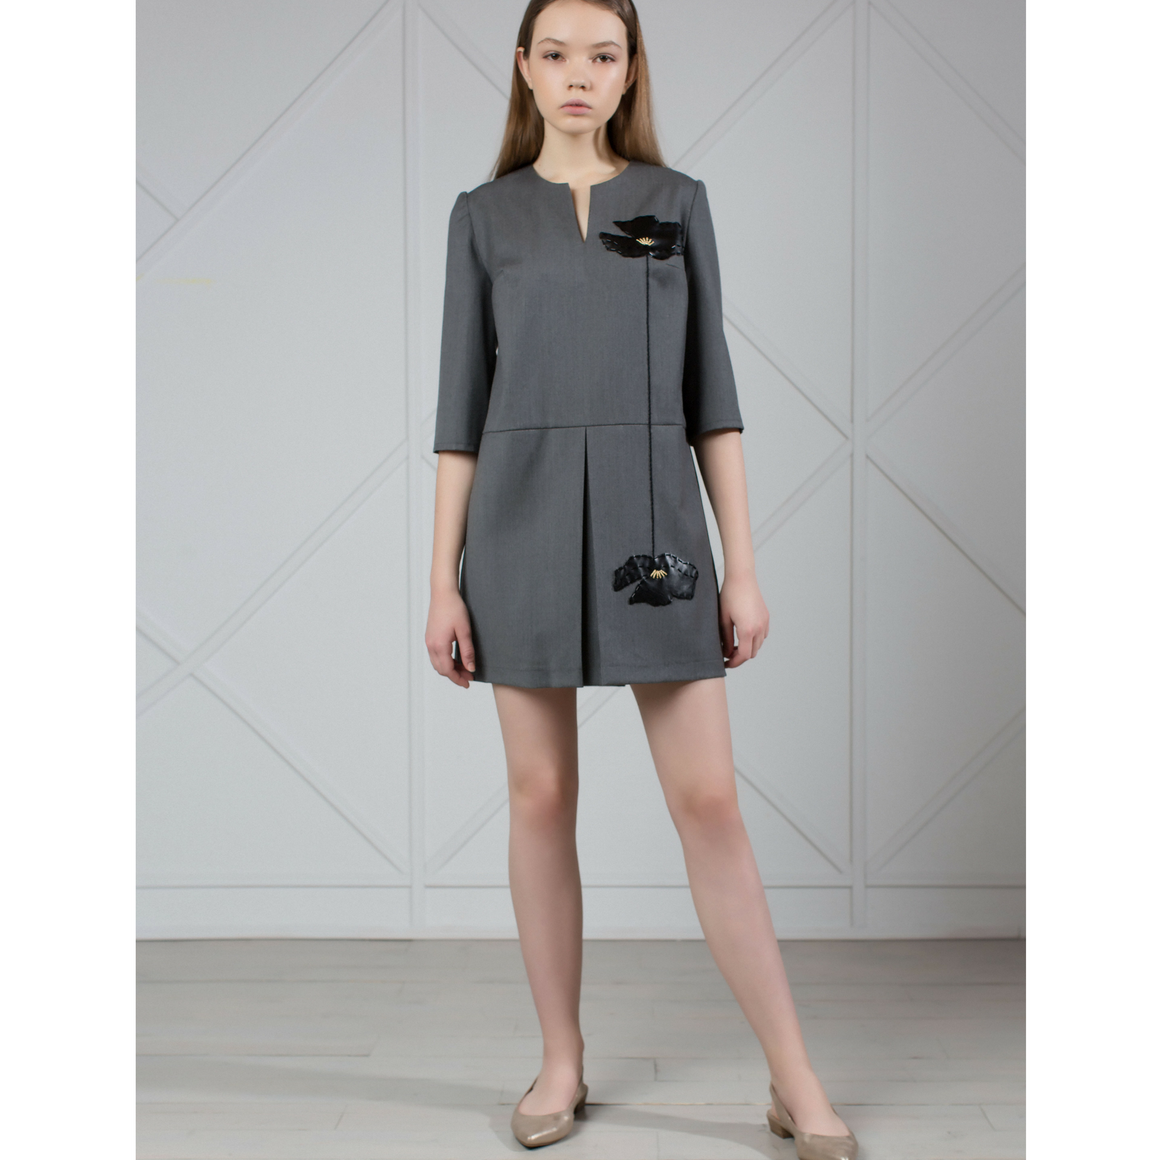 Gray wool mini dress with leather appliqué